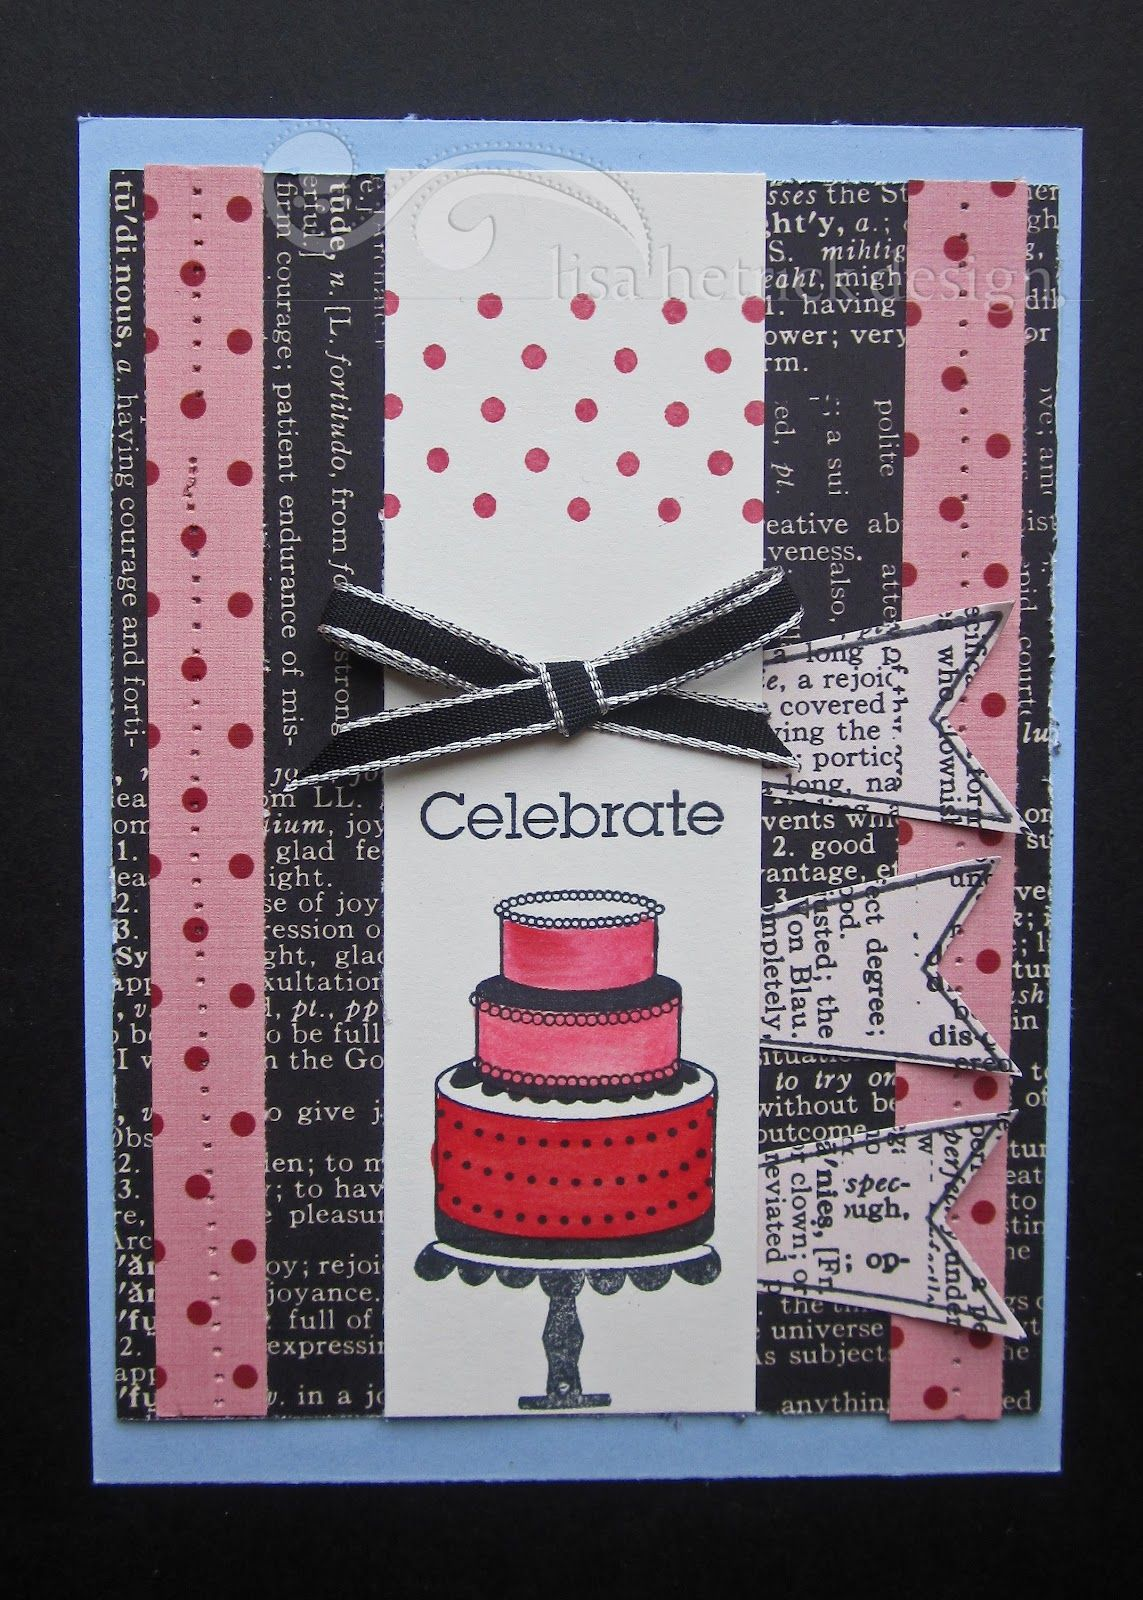 Celebrating in Style with CAKE! How fun is the cake builder element in this set. Perfect for coloring.